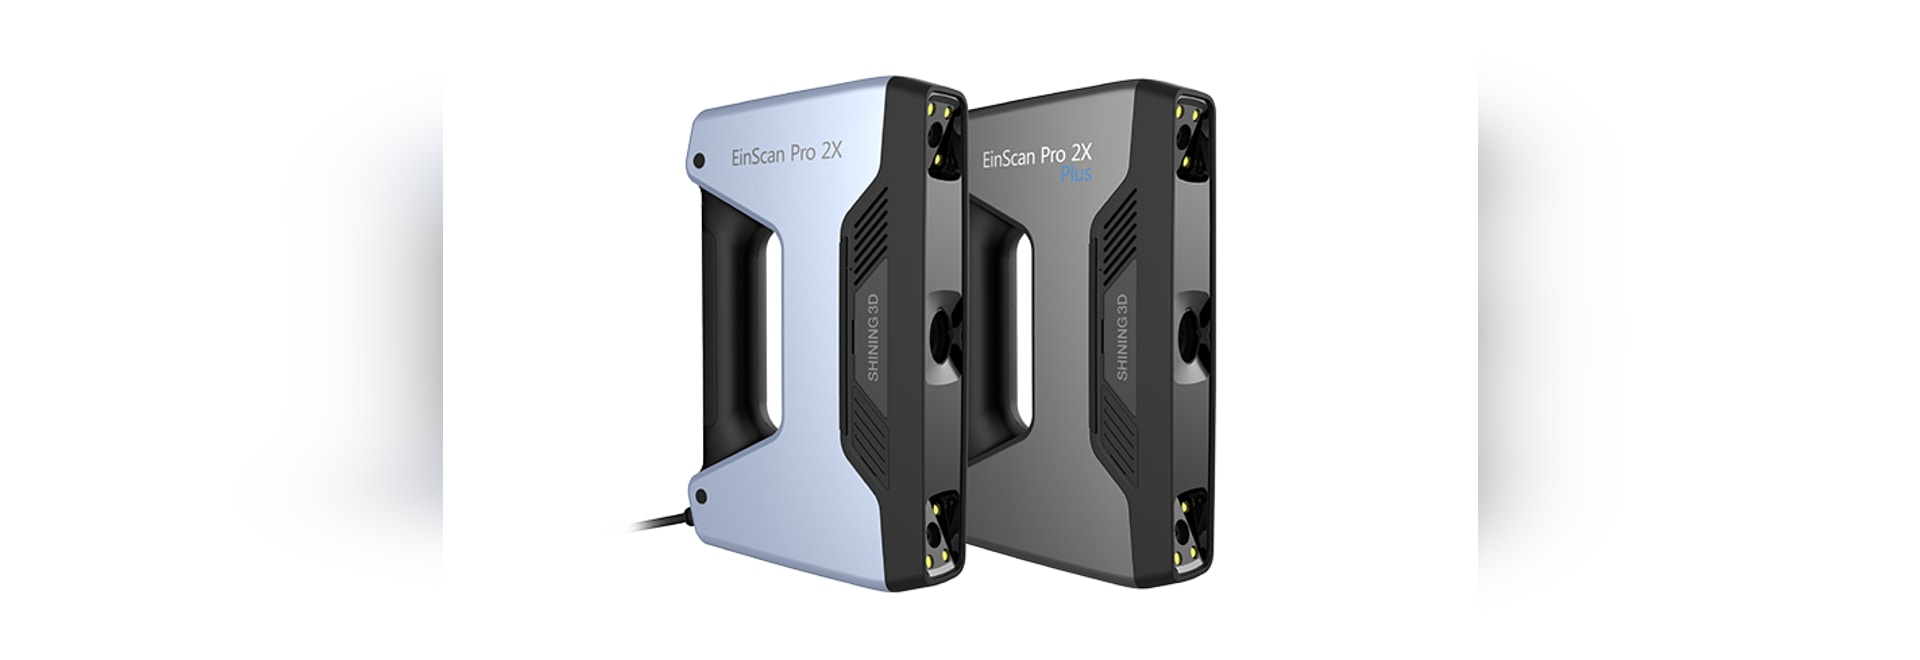 SHINING 3D Releases EinScan Pro 2X & 2X Plus Multifunctional Handheld 3D Scanner at Formnext 2018